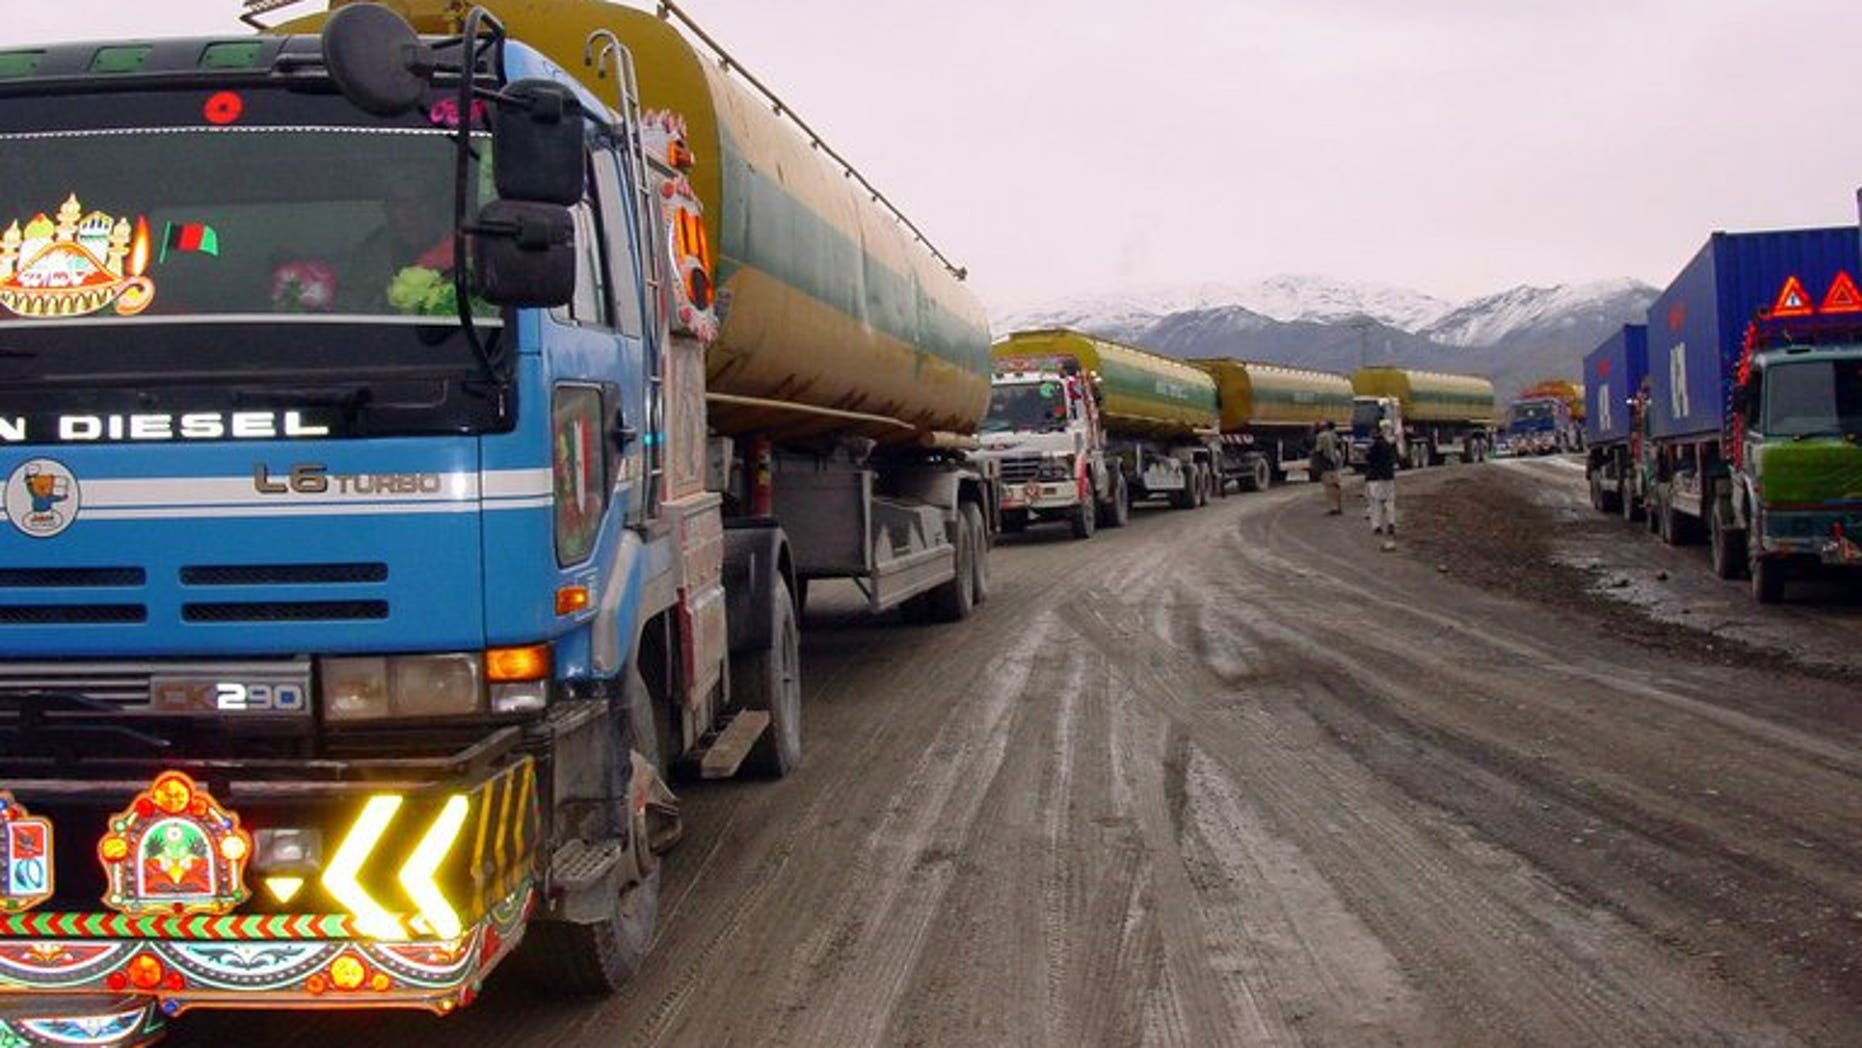 A convoy of NATO supply trucks prepares to cross into Afghanistan at the border town of Chaman on January 14, 2009. Pakistani security officials said Thursday they had arrested 12 members of a gang involved in torching and destroying shipments for NATO troops in Afghanistan.